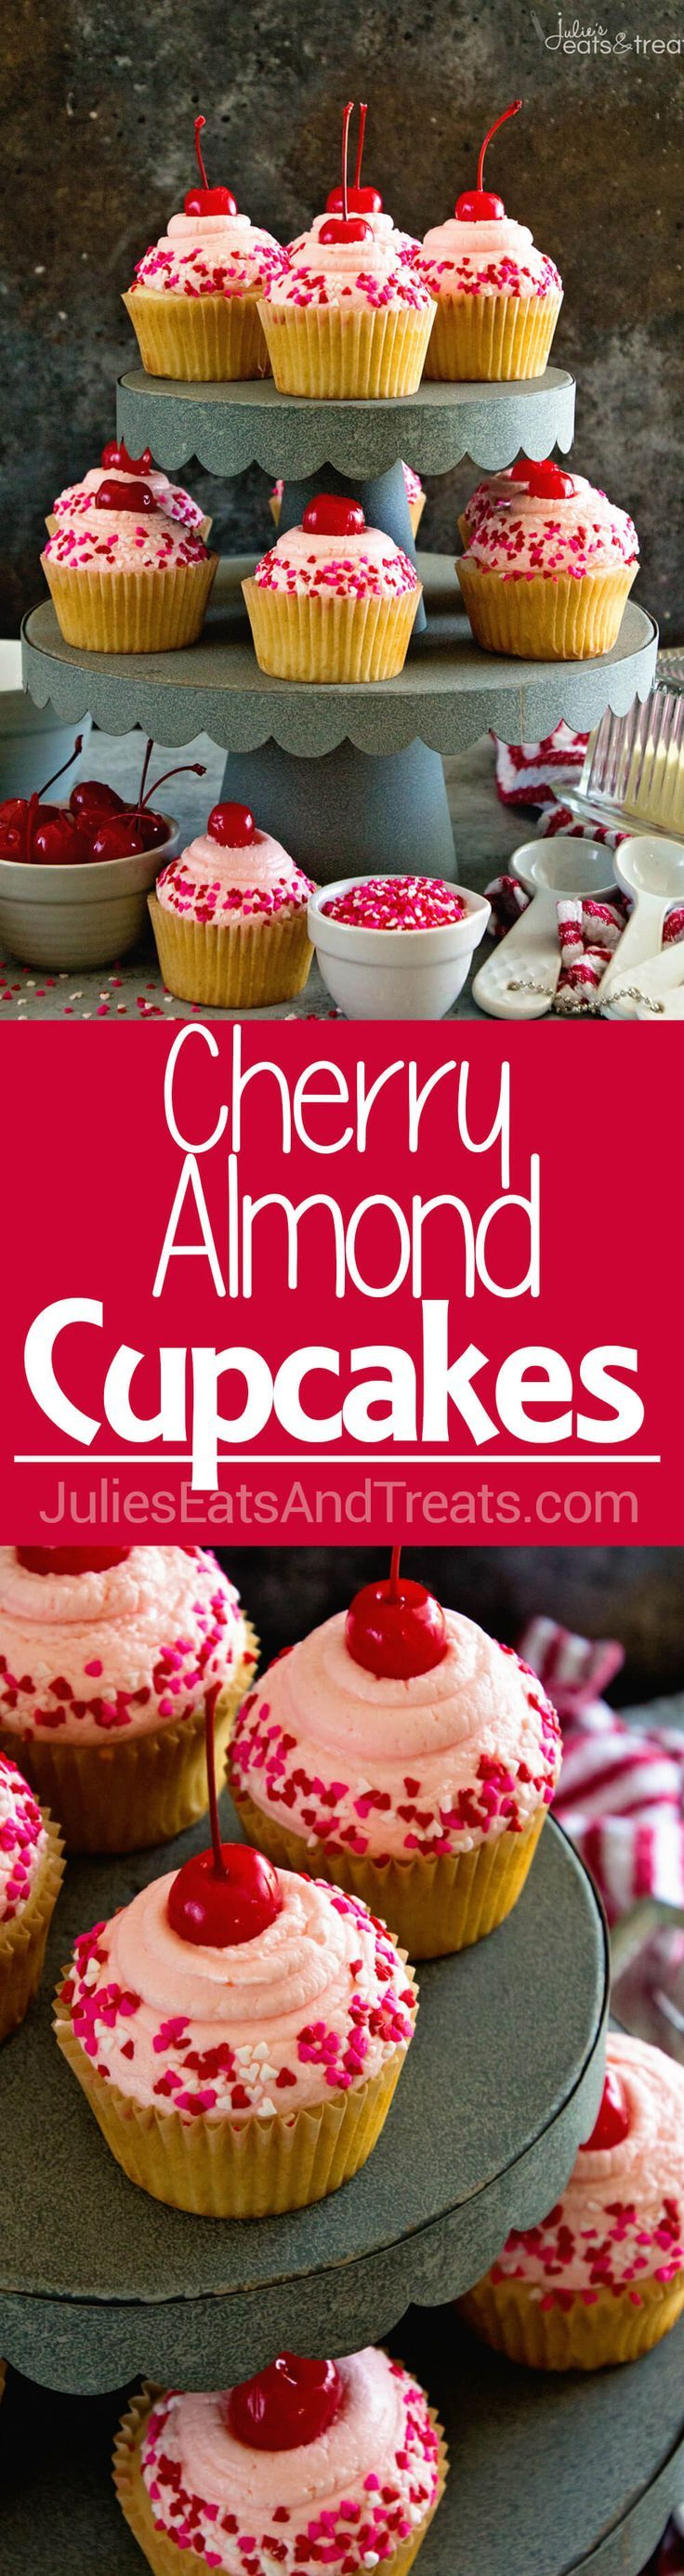 Cherry Almond Cupcakes ~ Light & Fluffy Almond Cupcakes Topped with Cherry Frosting! Perfect for Holidays, Birthdays or Just Because! via /julieseats/